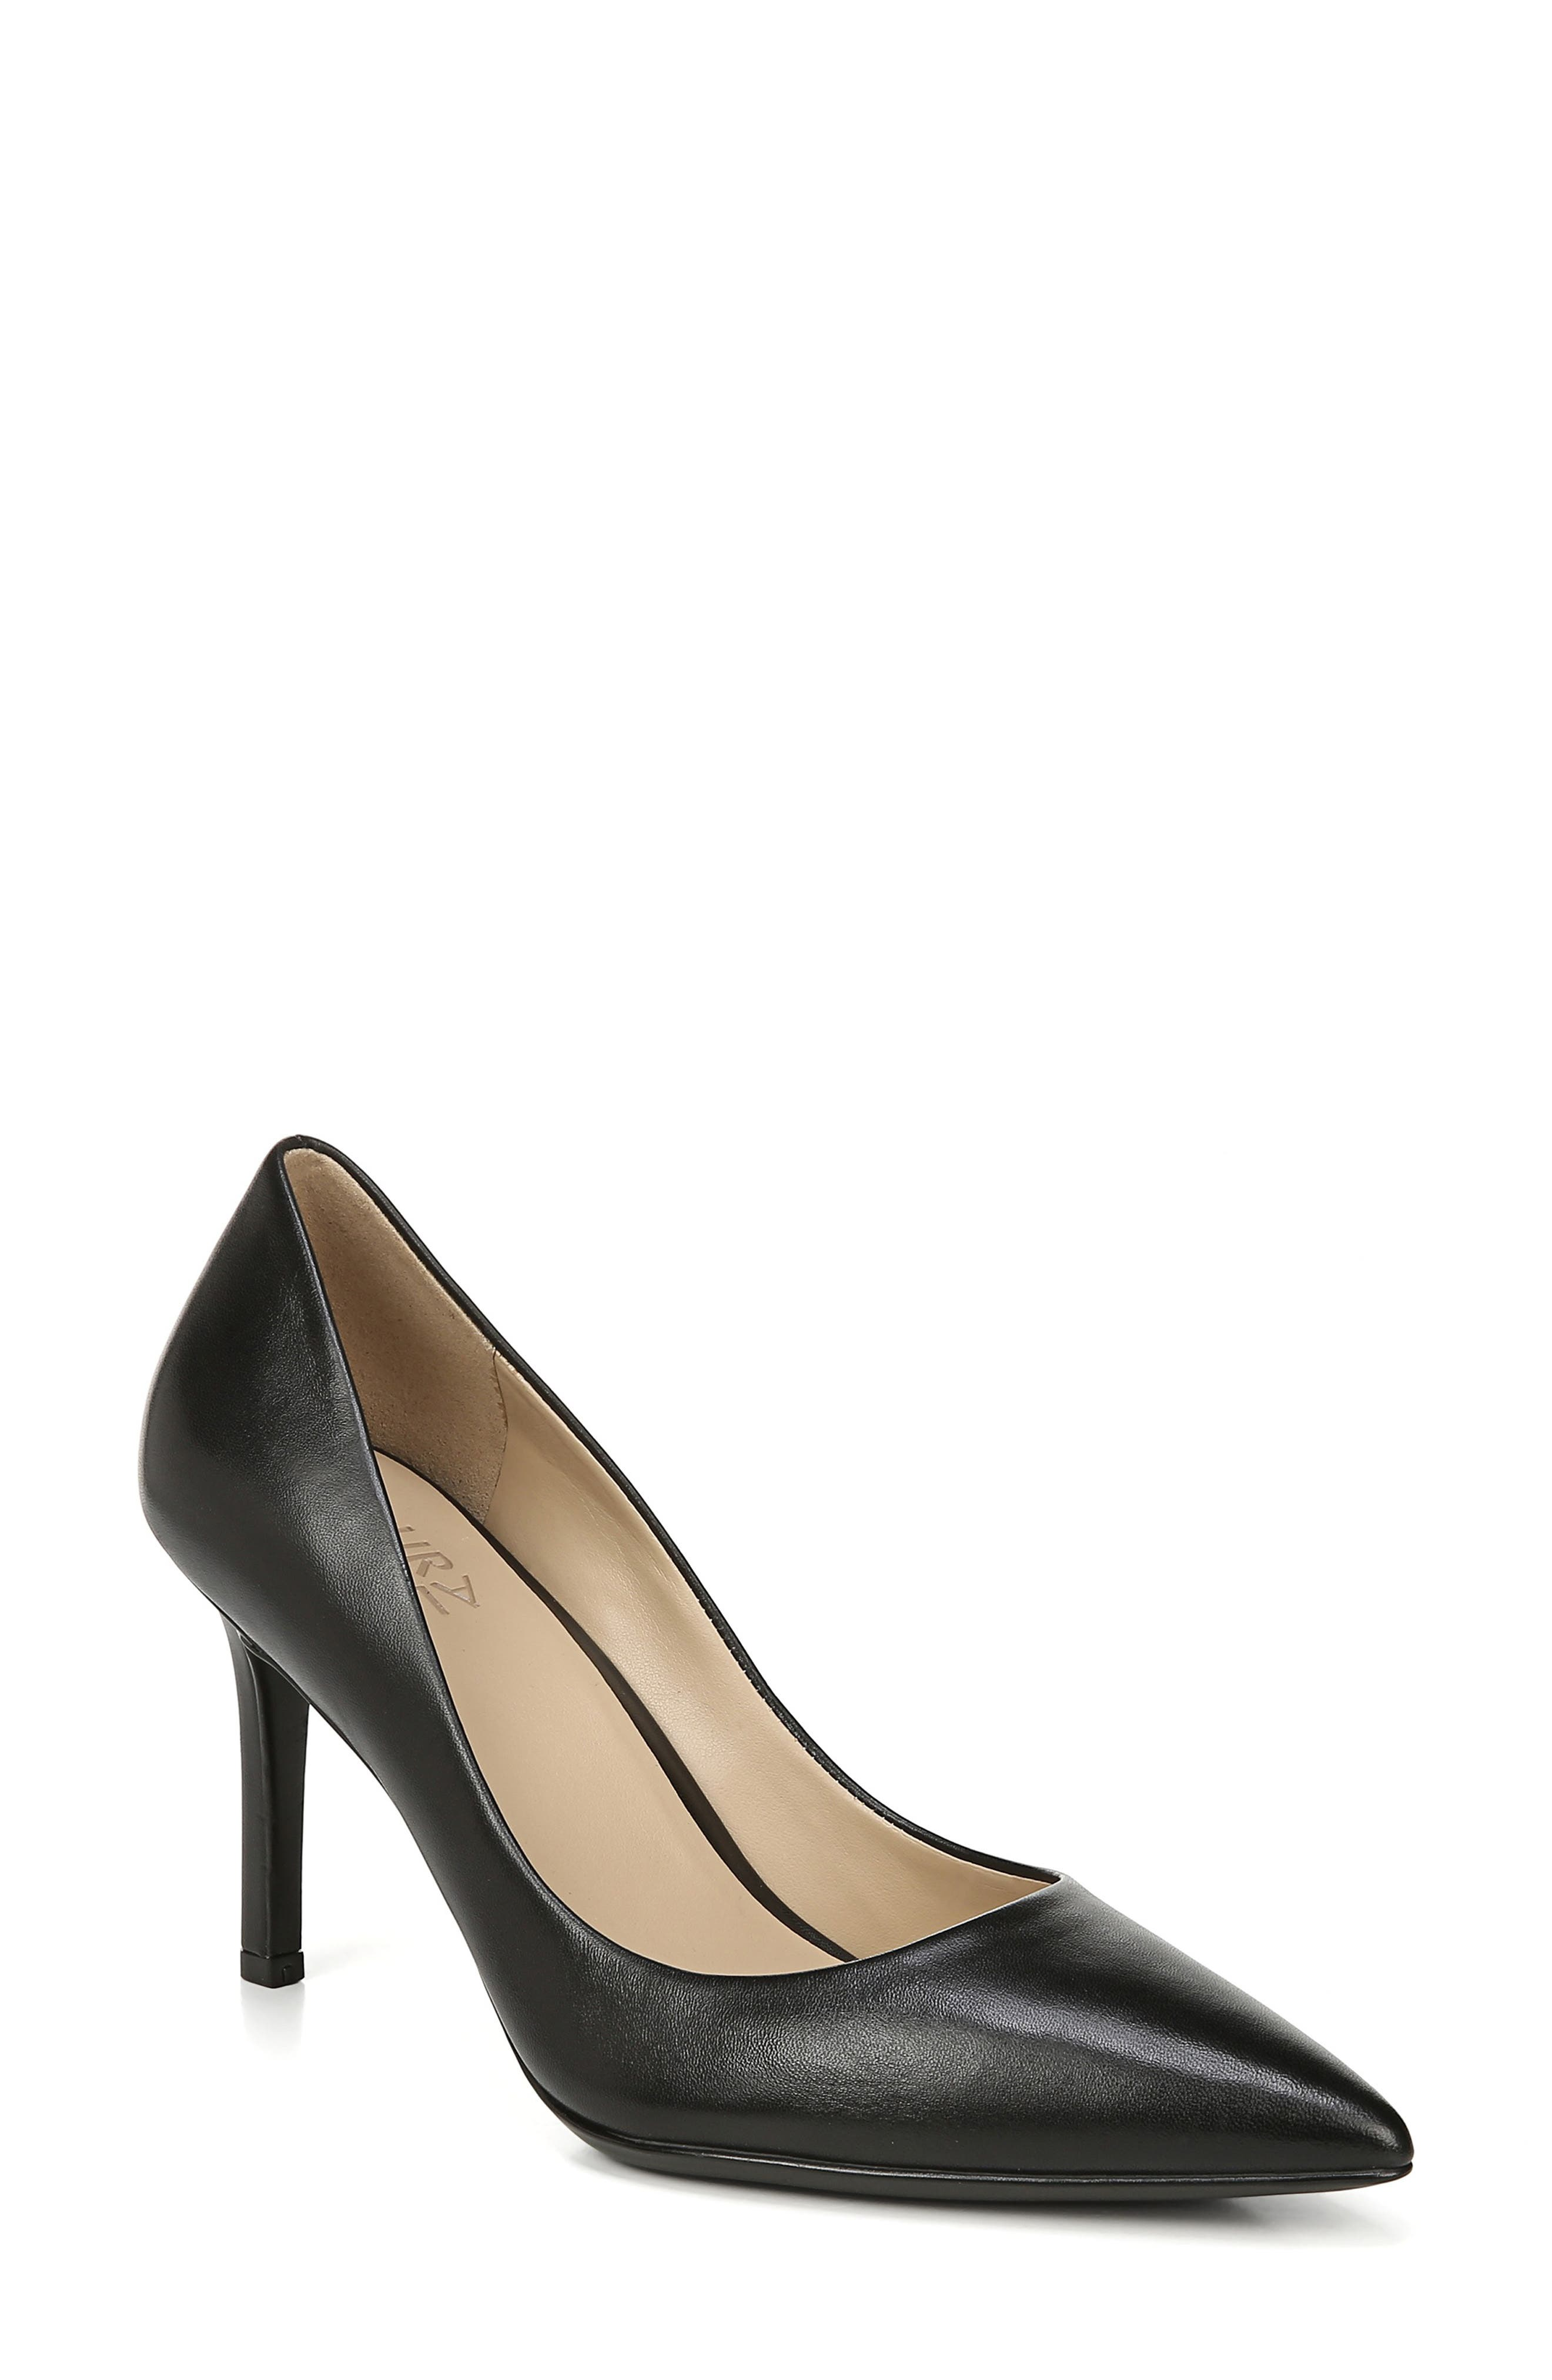 Naturalizer Anna Pump W - Black